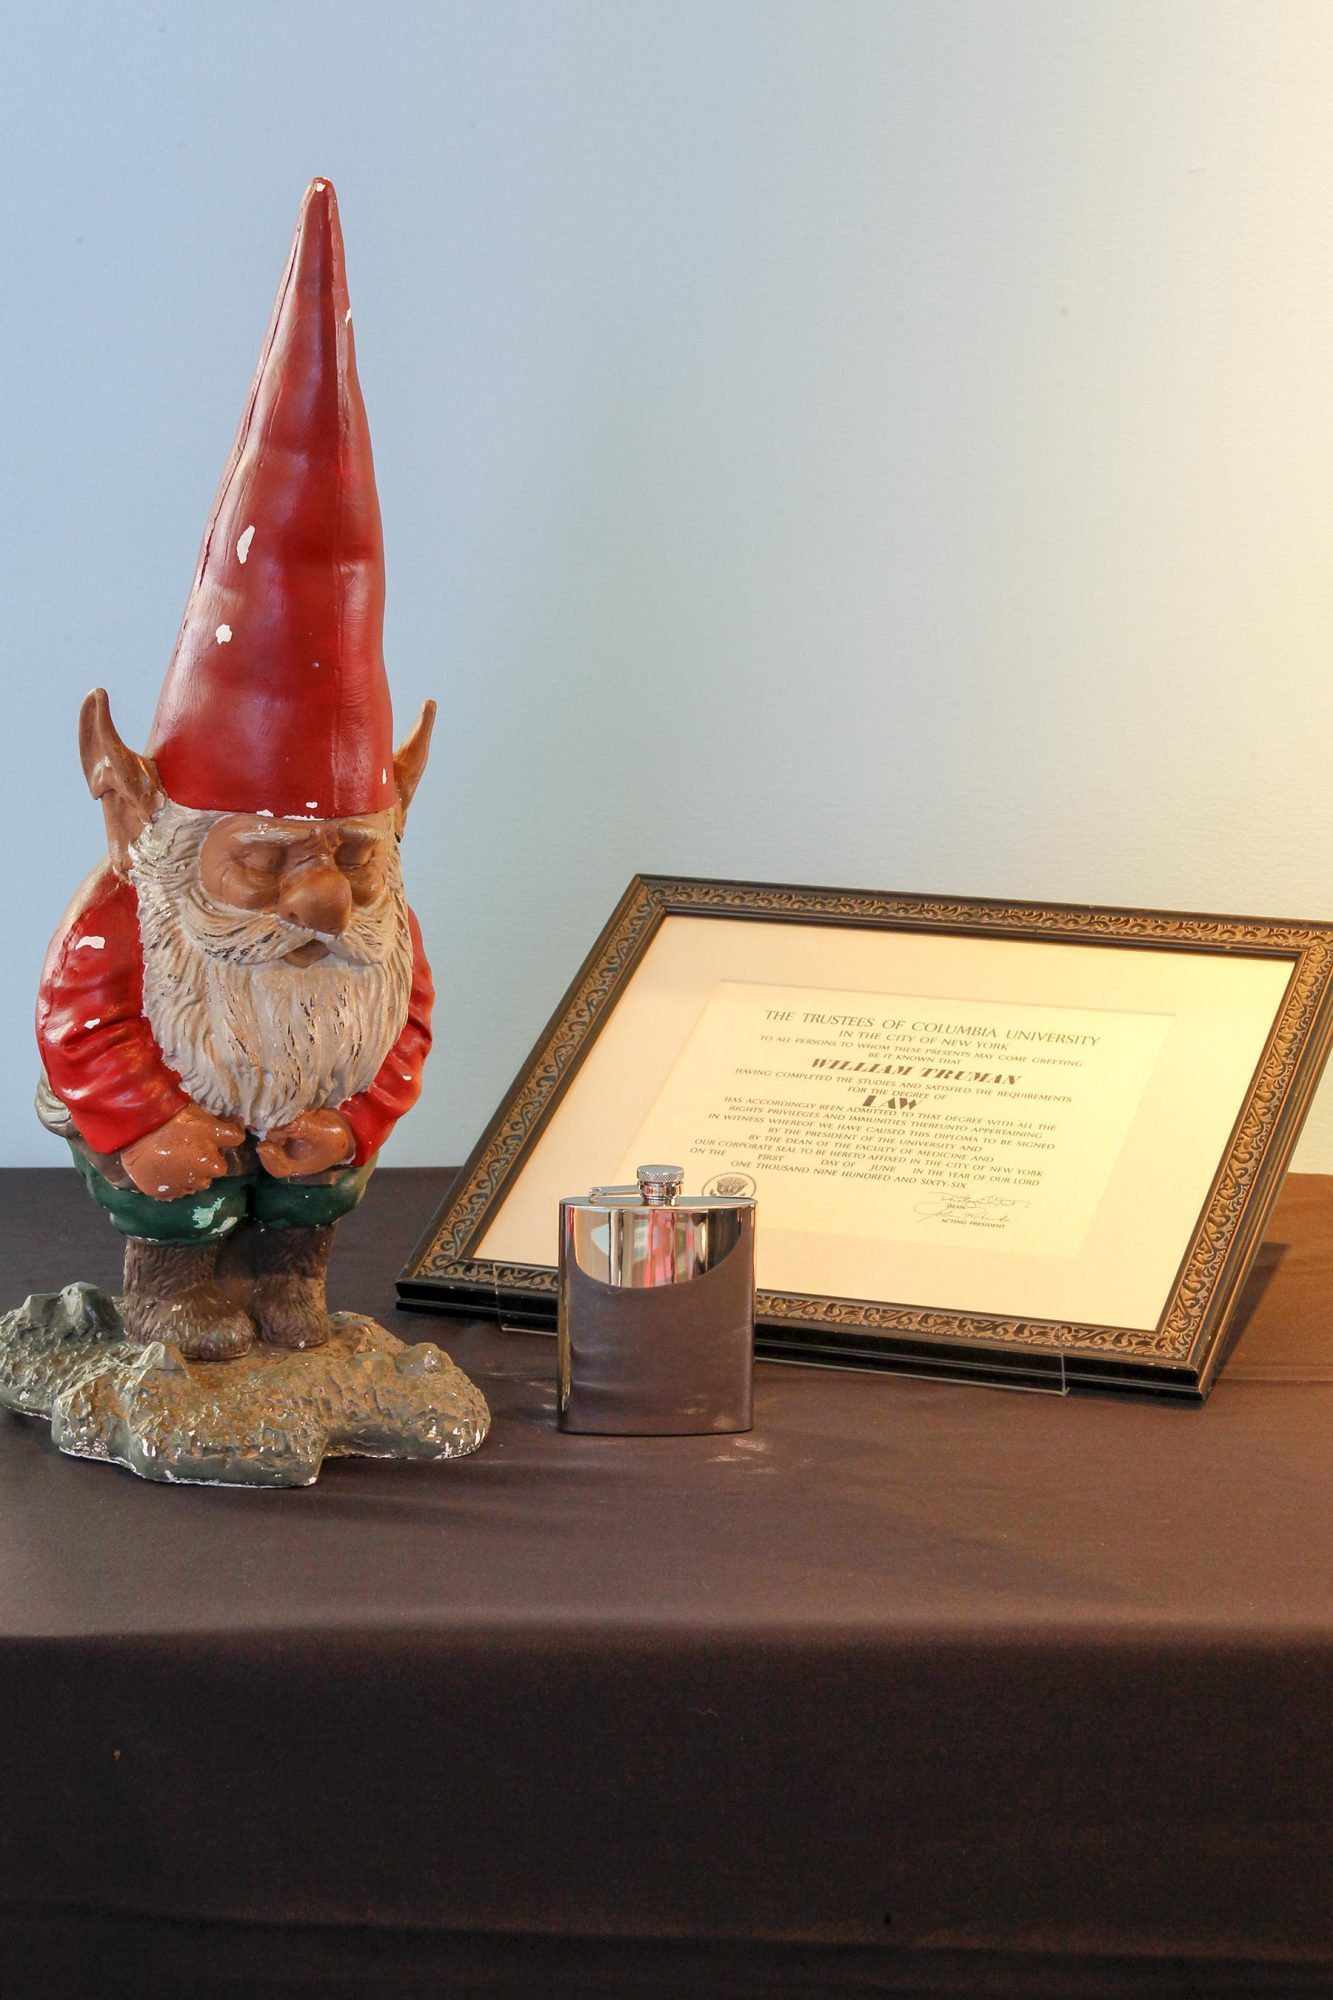 Karen's (Megan Mullally) flask, Will's (Eric McCormack) law degree, and garden gnome from Will & Grace